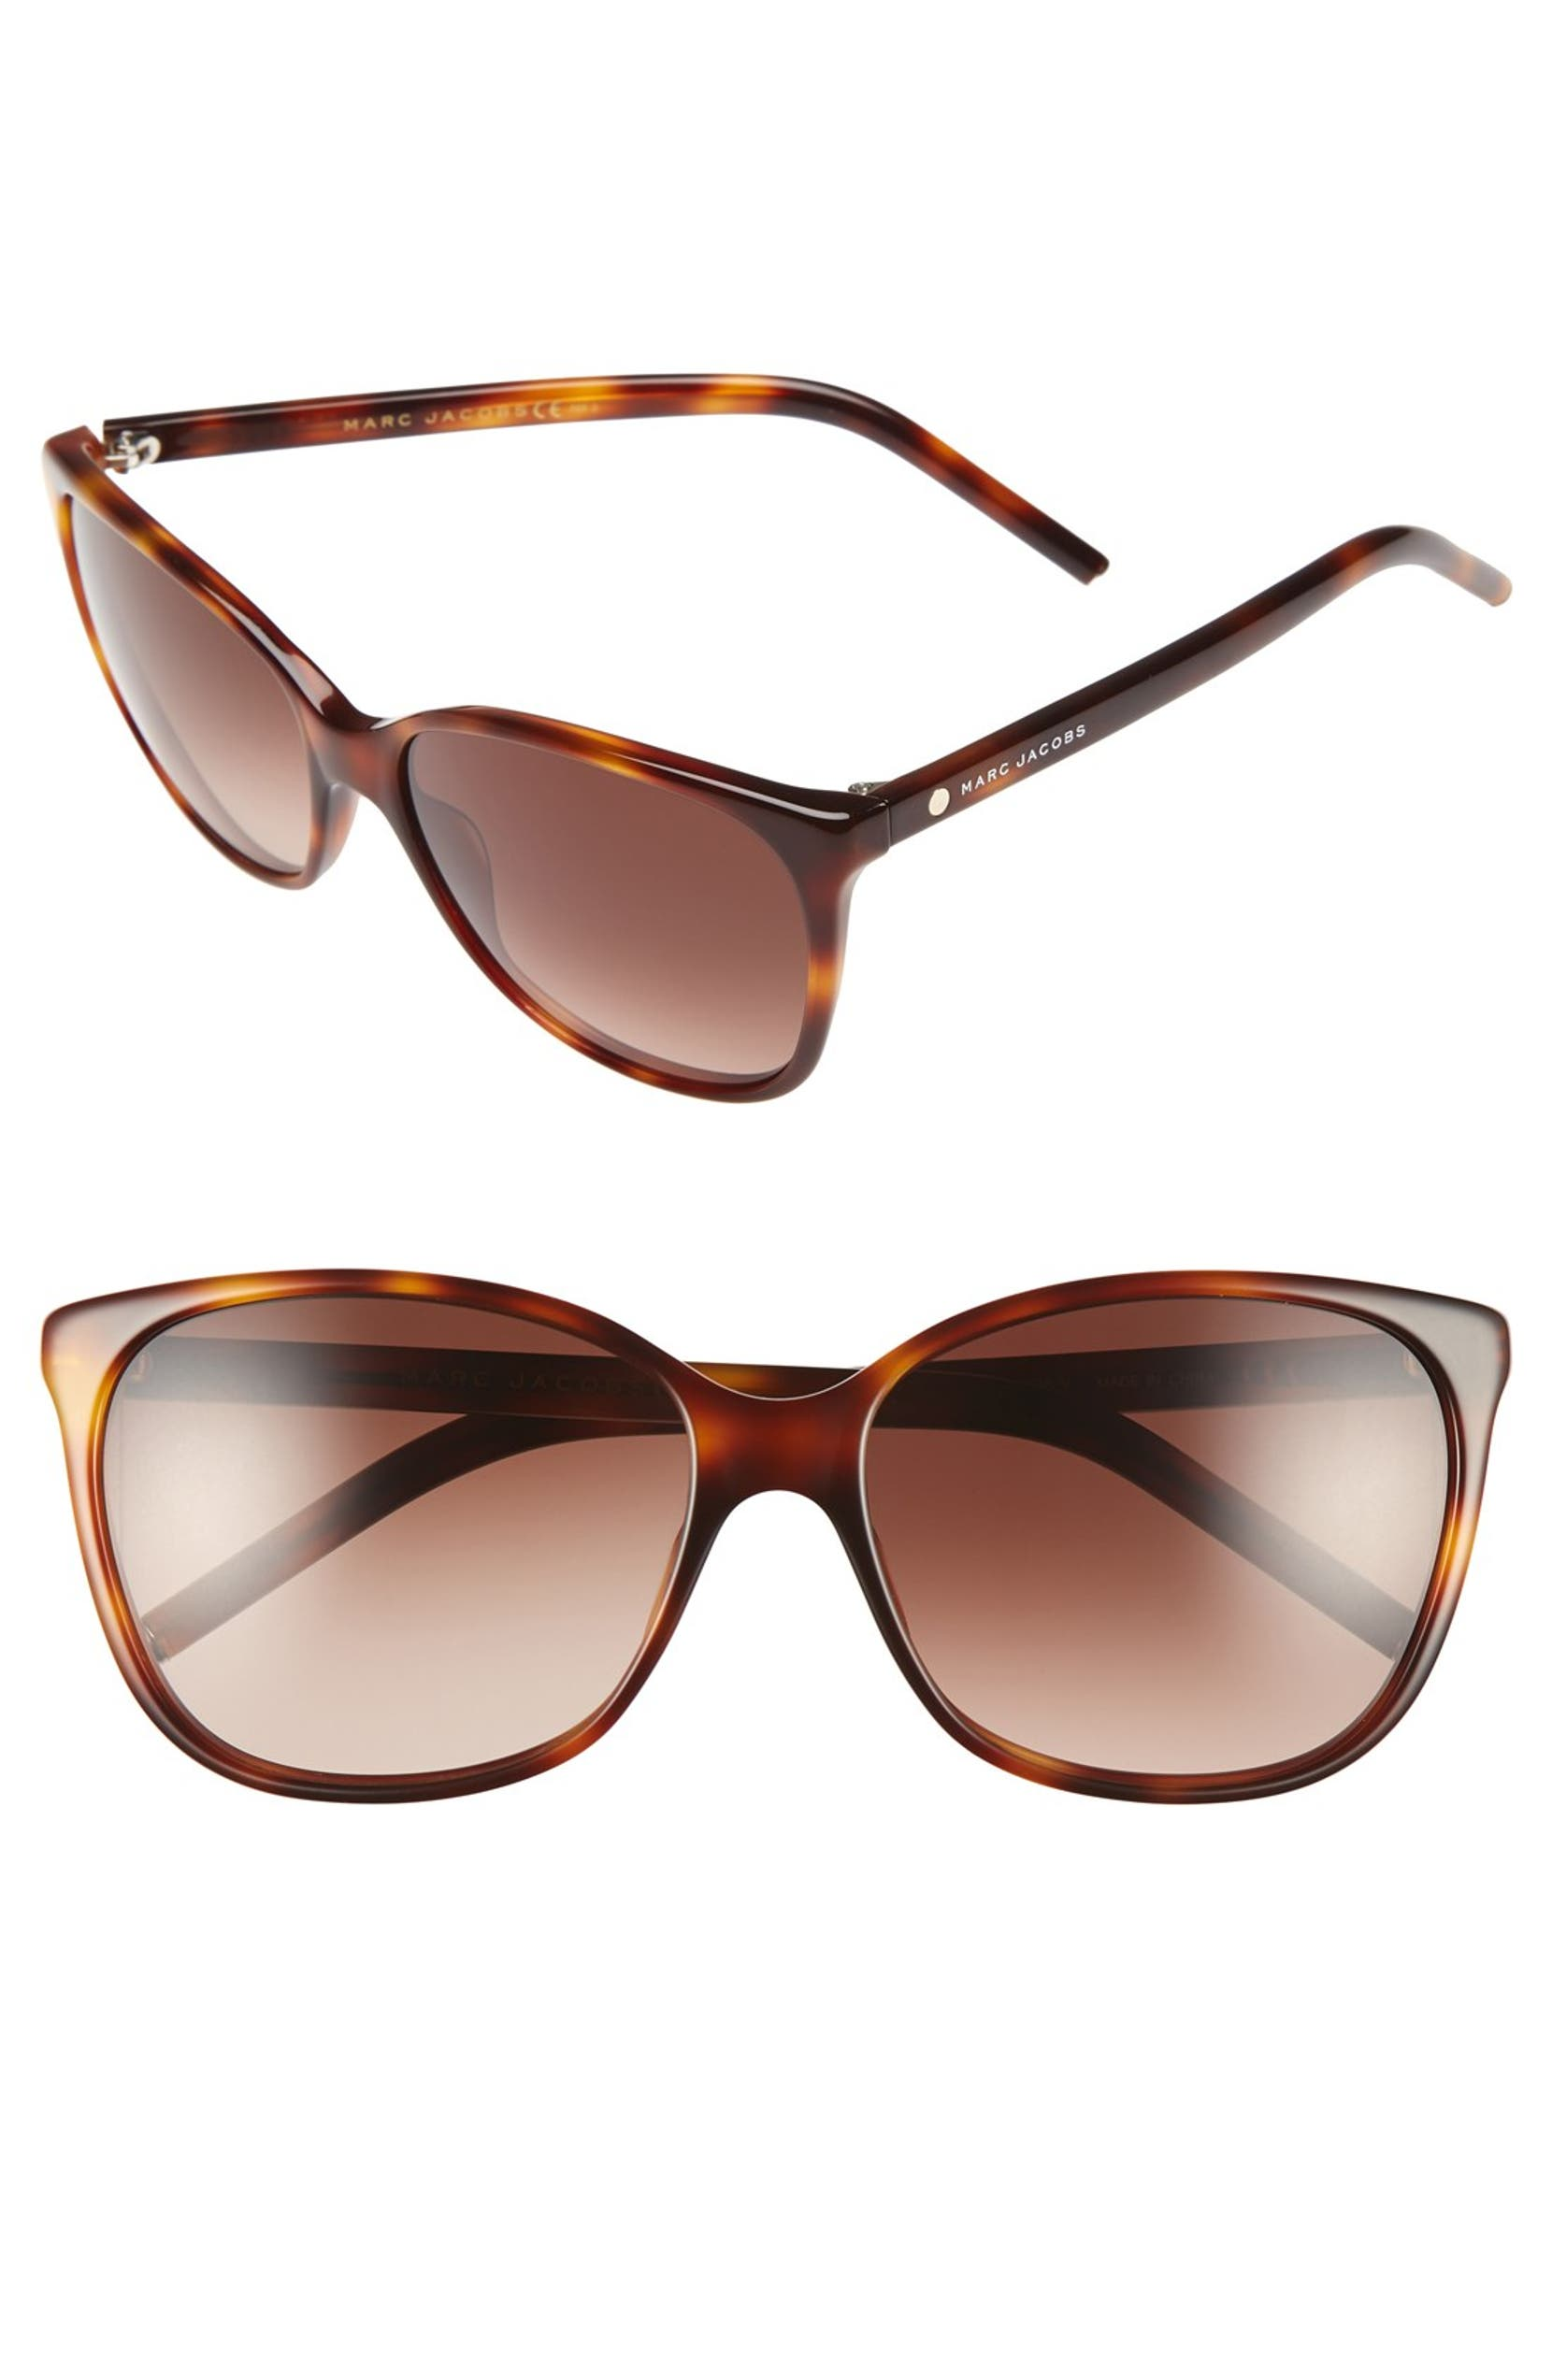 c83dde4bb2 MARC JACOBS 57mm Oversized Sunglasses